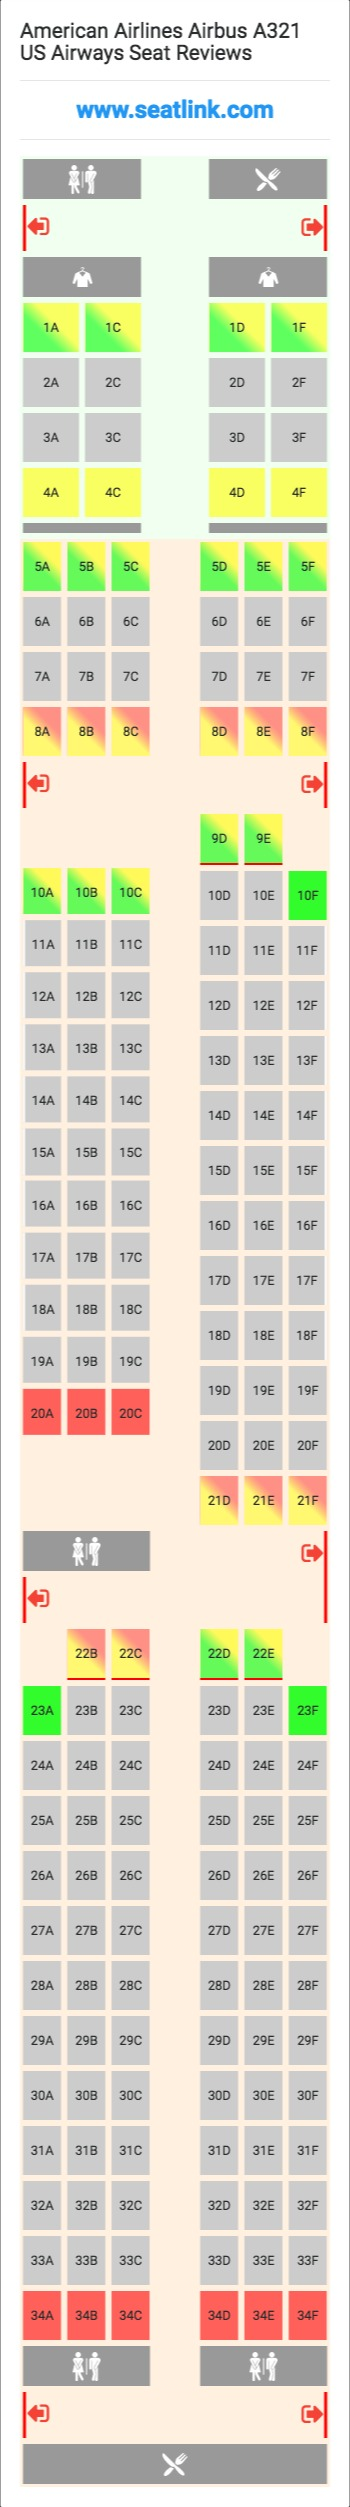 American Airlines Airbus A321 Us Airways Seating Chart Updated